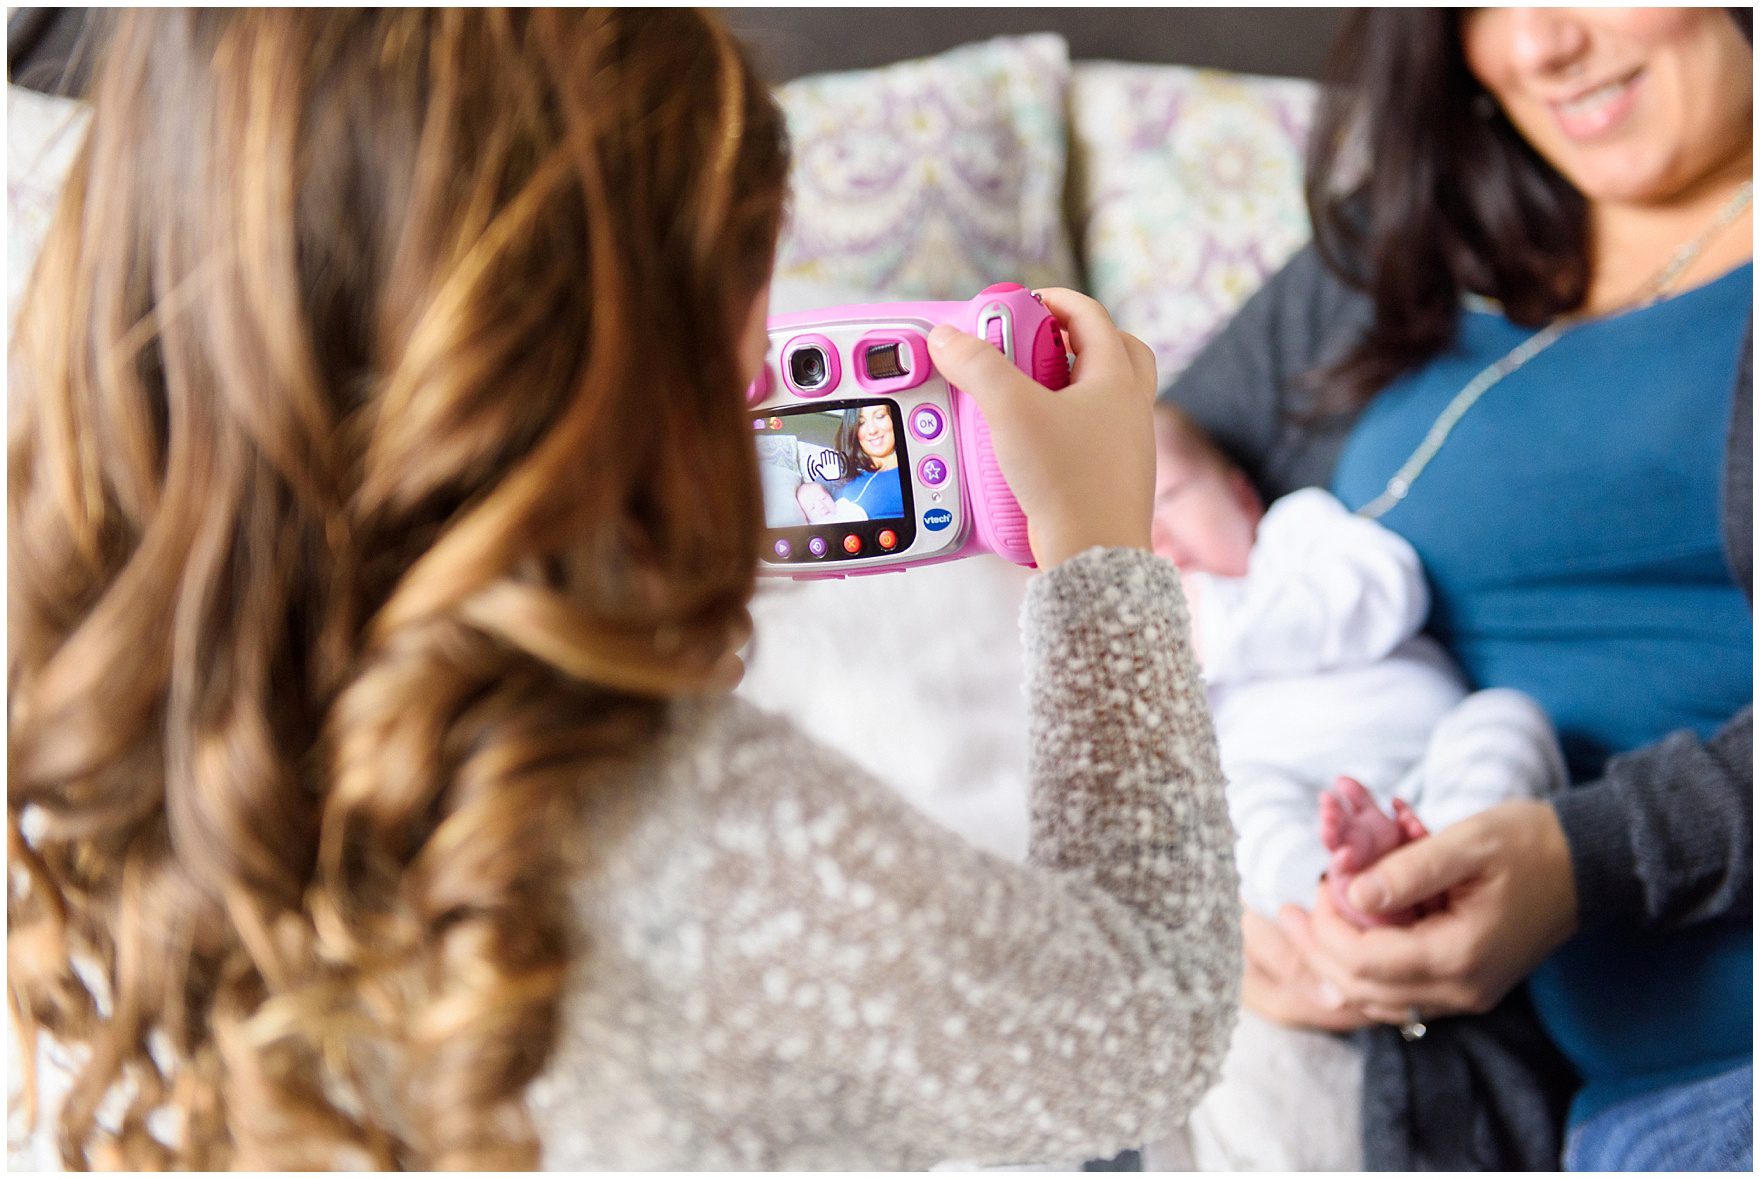 Little girl takes a photo of her mom and baby brother with a toy camera during a Lincoln Park lifestyle newborn session in Chicago.